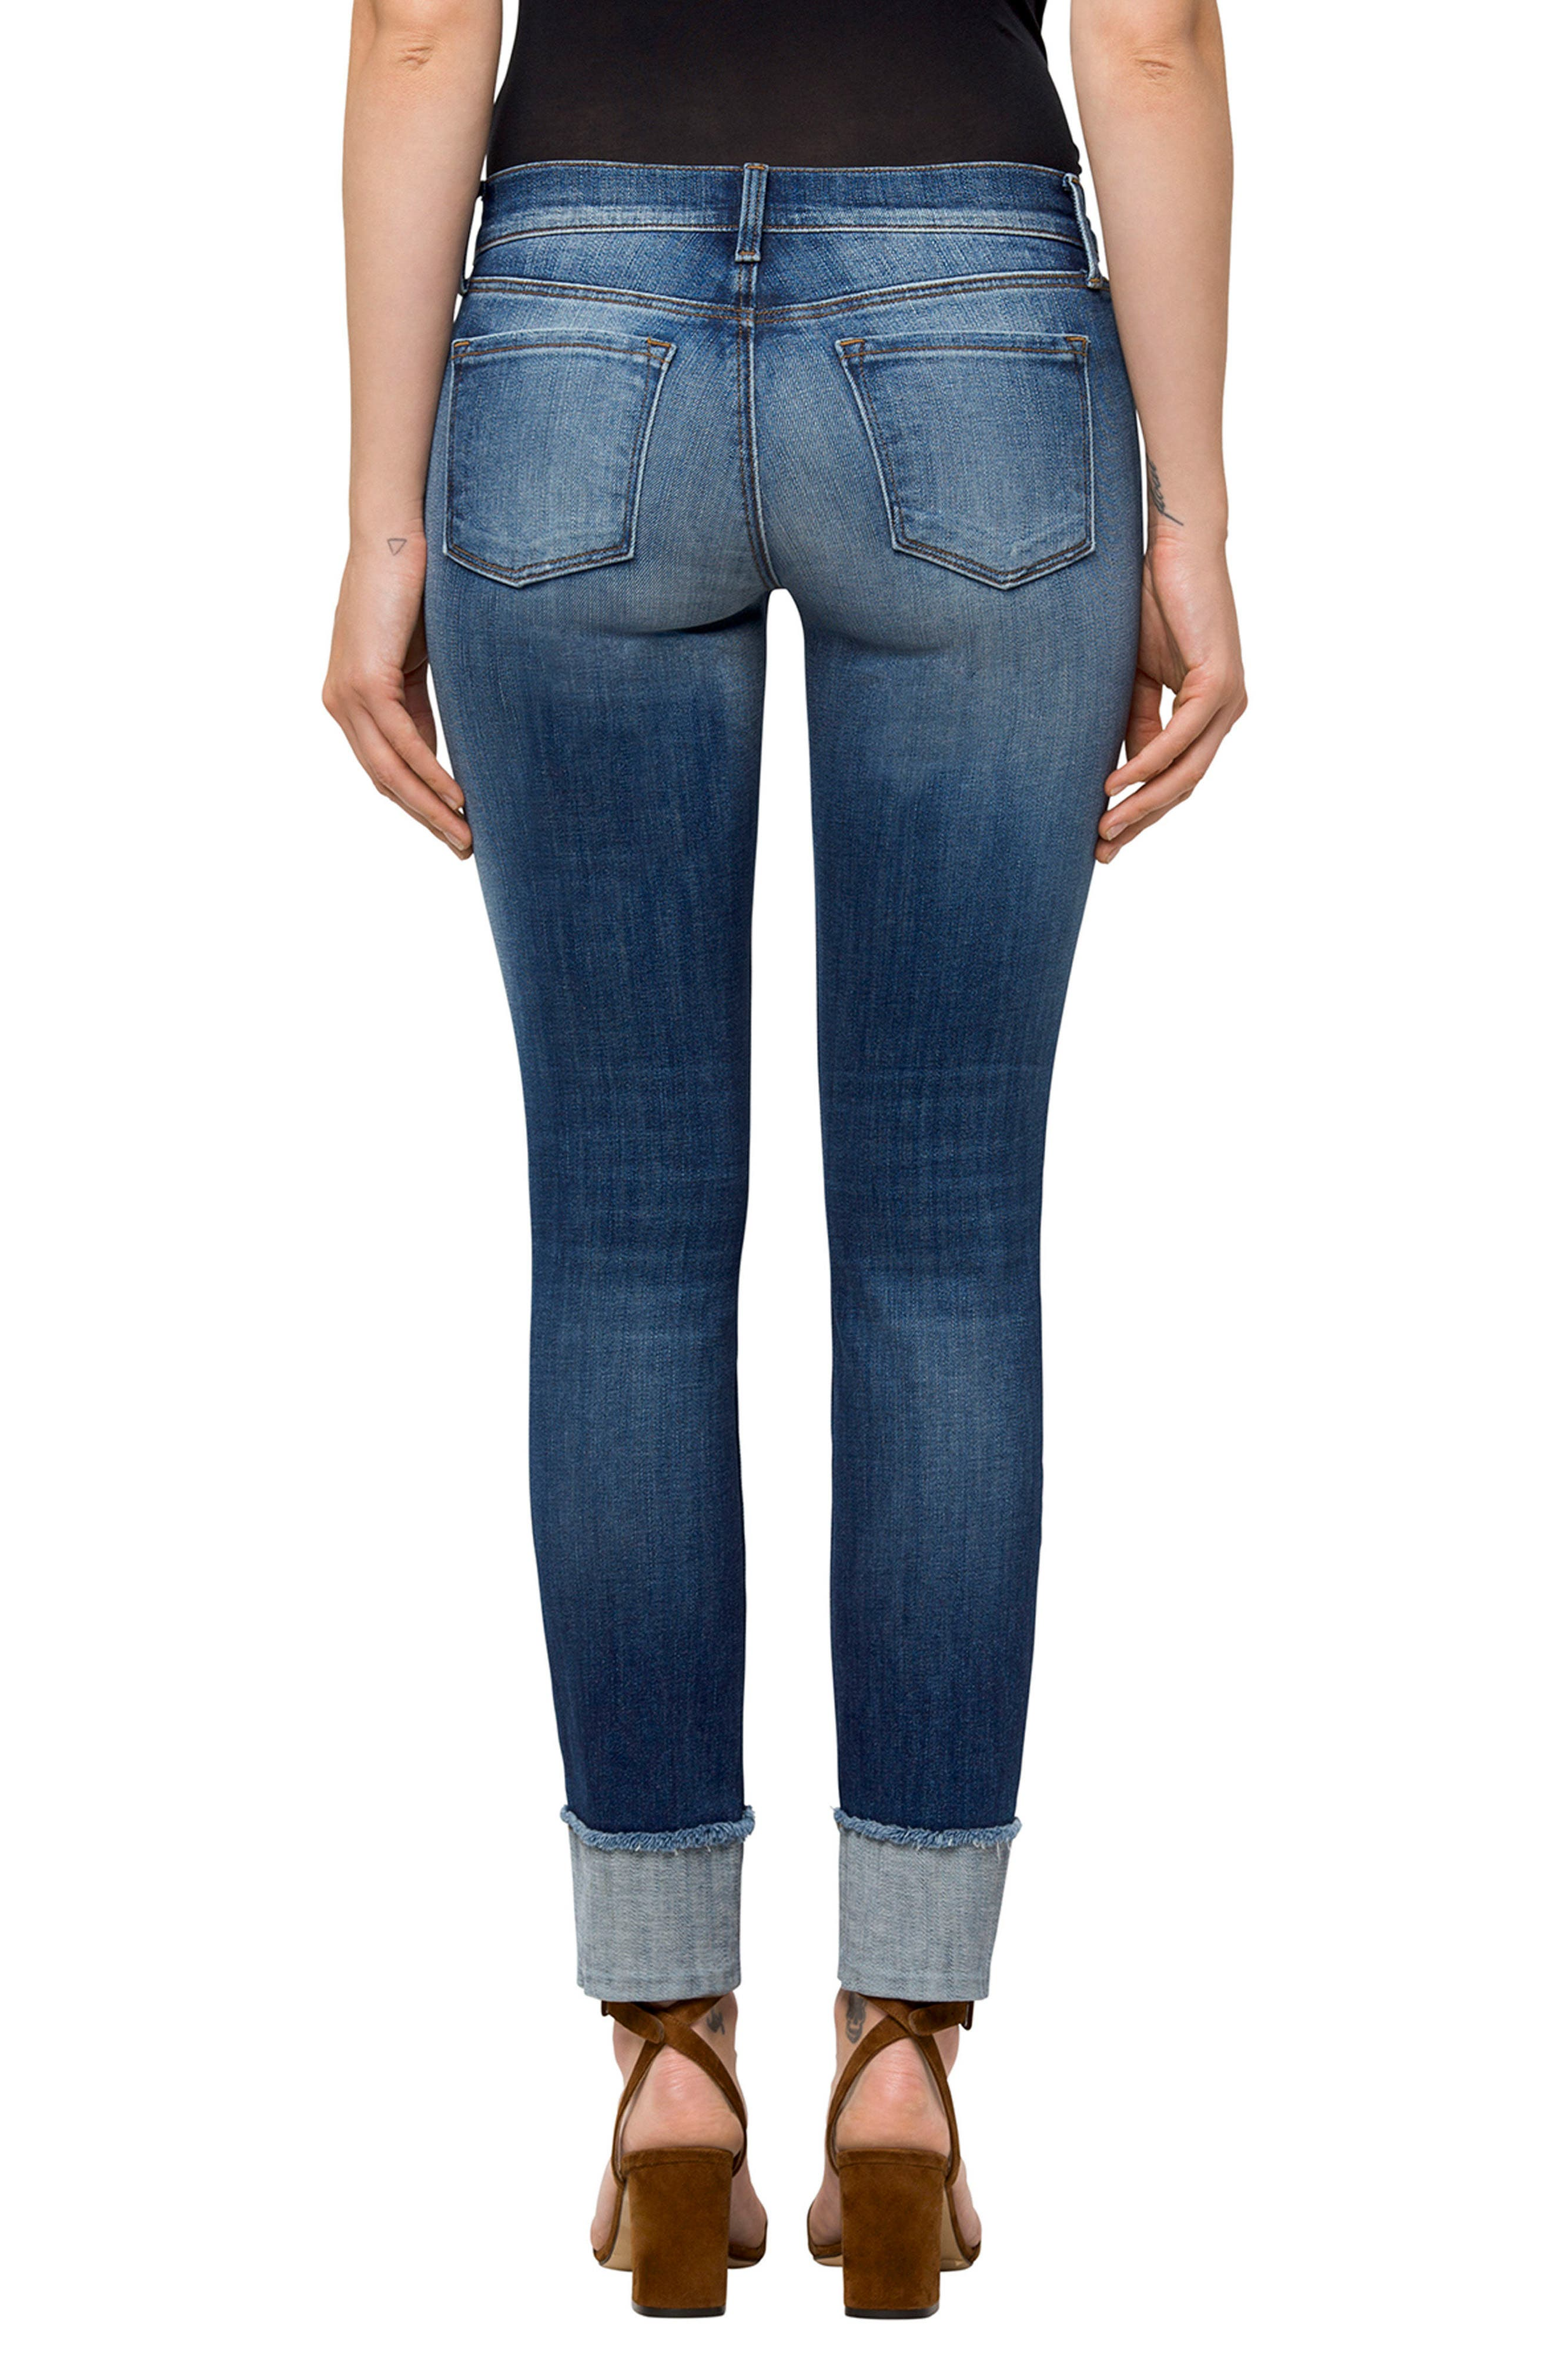 Hipster Low Rise Jeans,                             Alternate thumbnail 2, color,                             401